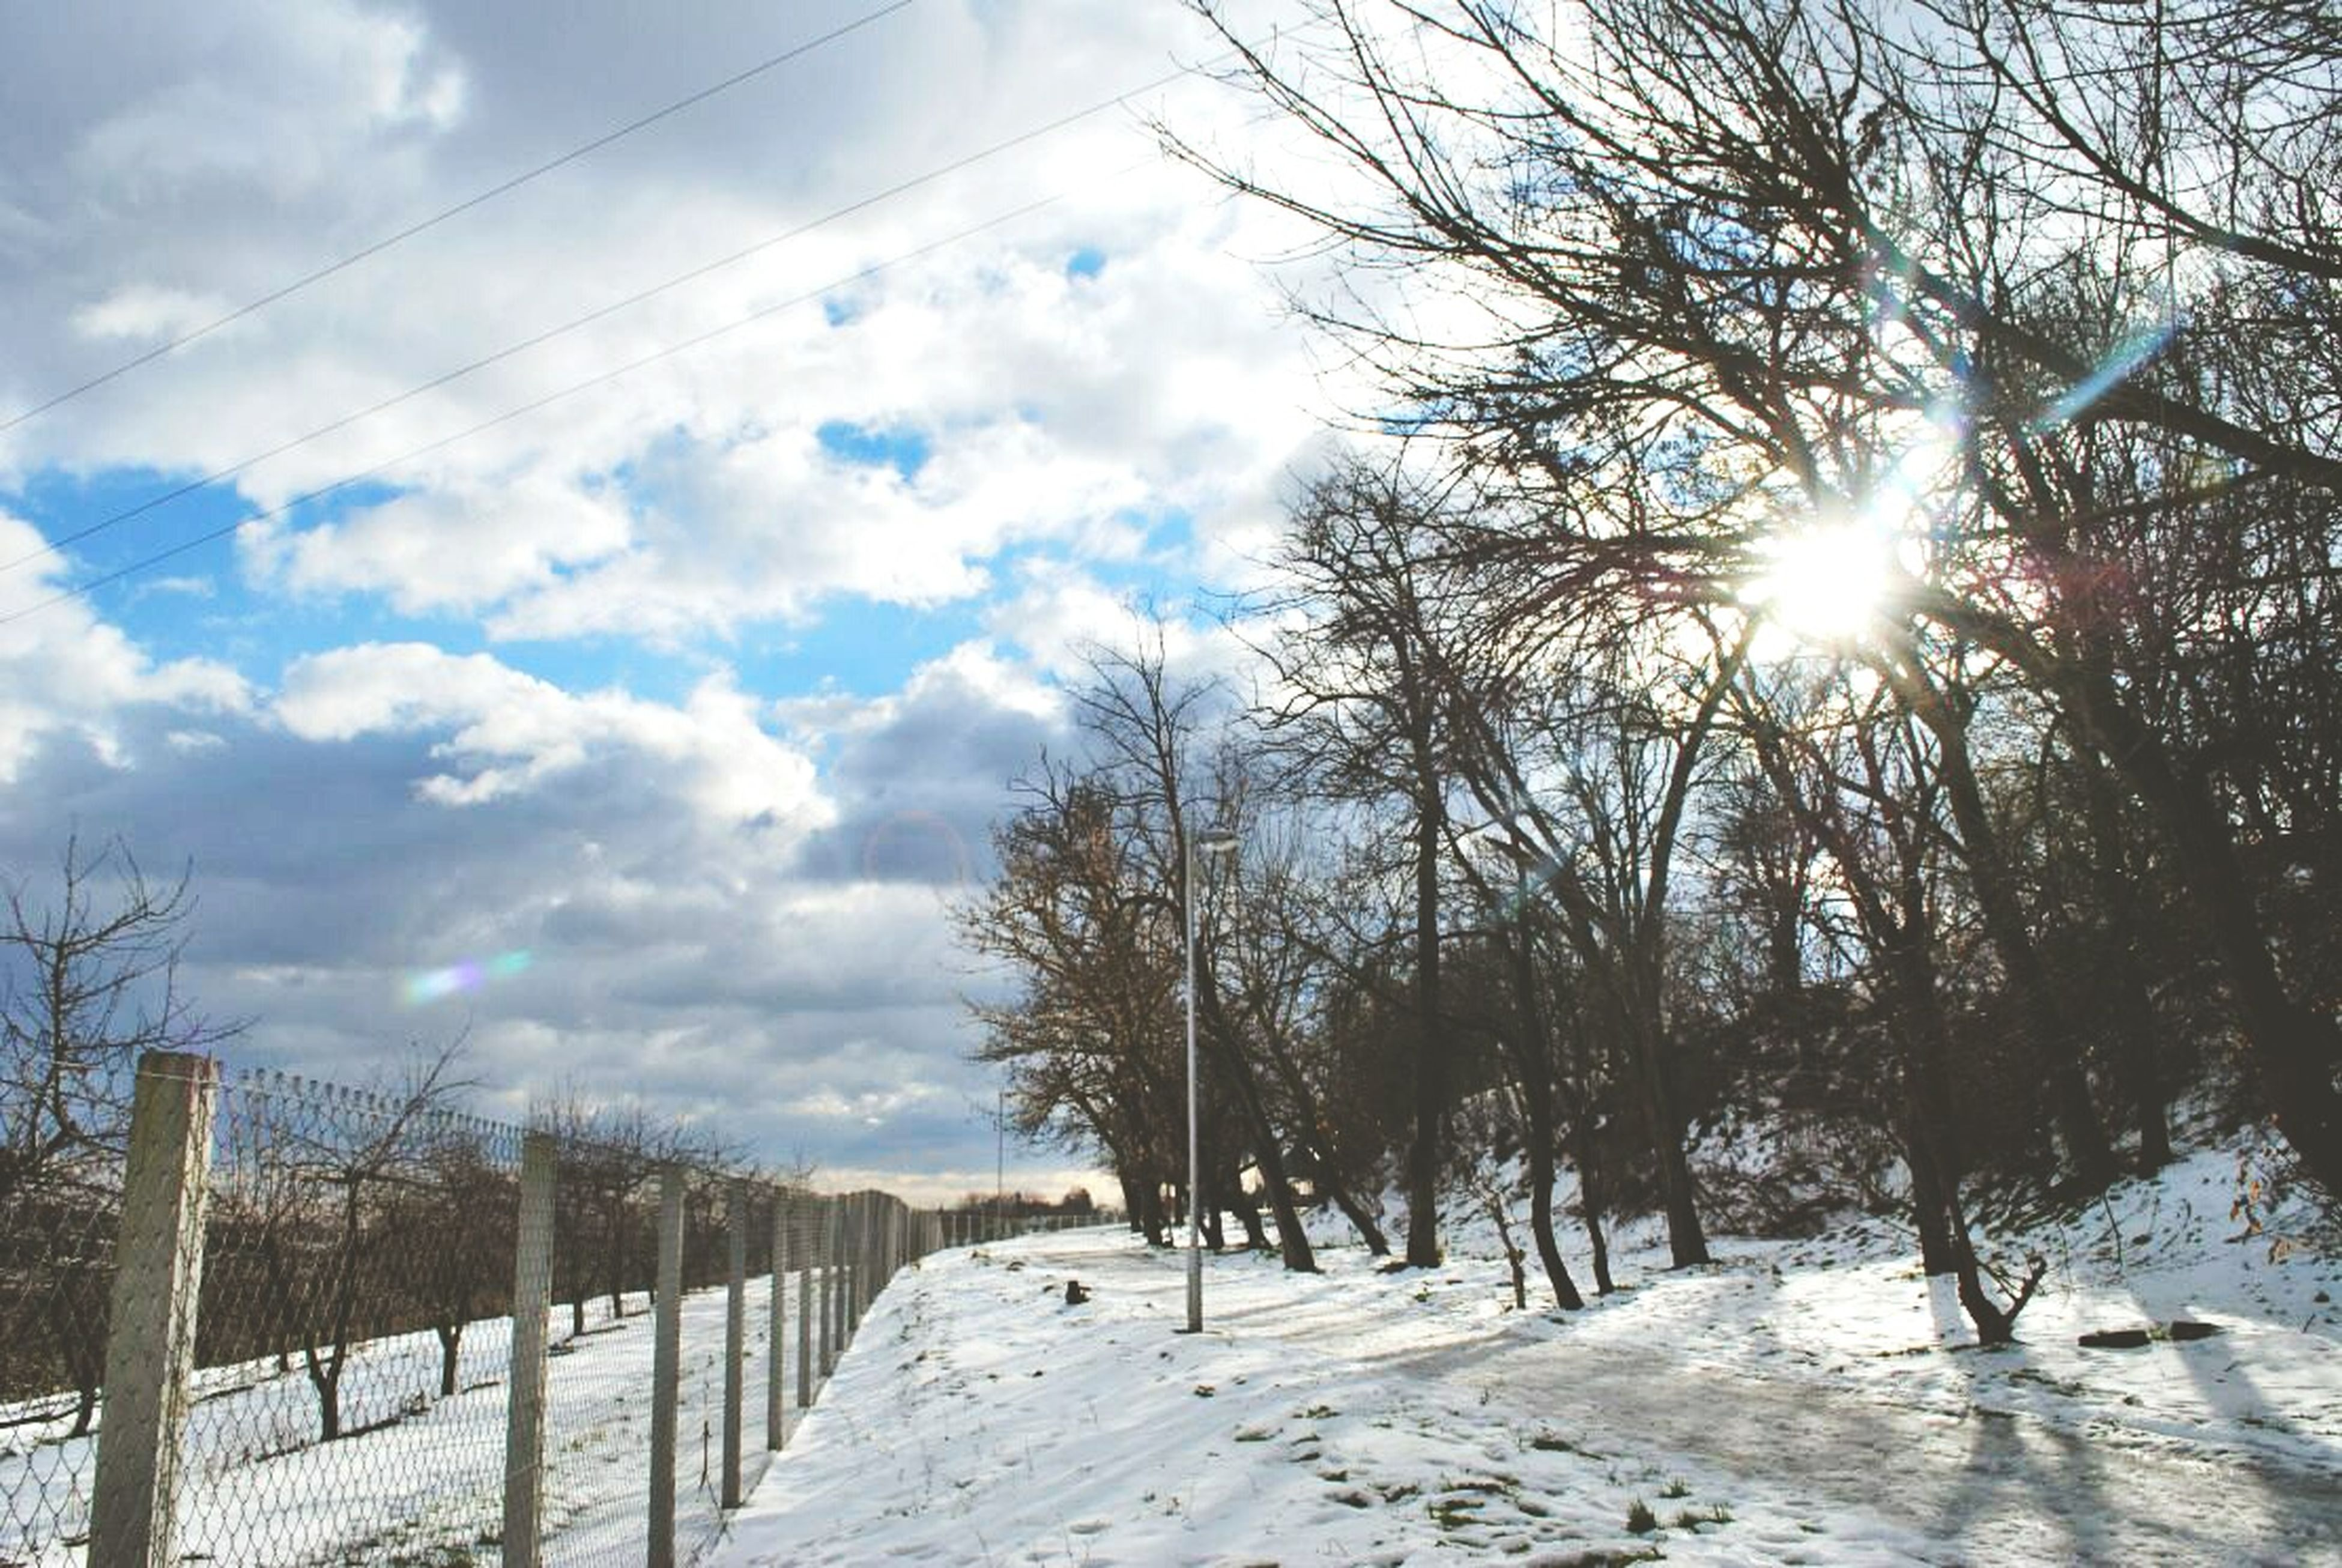 sky, tree, bare tree, sun, cloud - sky, sunlight, tranquility, snow, nature, winter, branch, cold temperature, sunbeam, tranquil scene, beauty in nature, railing, scenics, water, cloud, weather